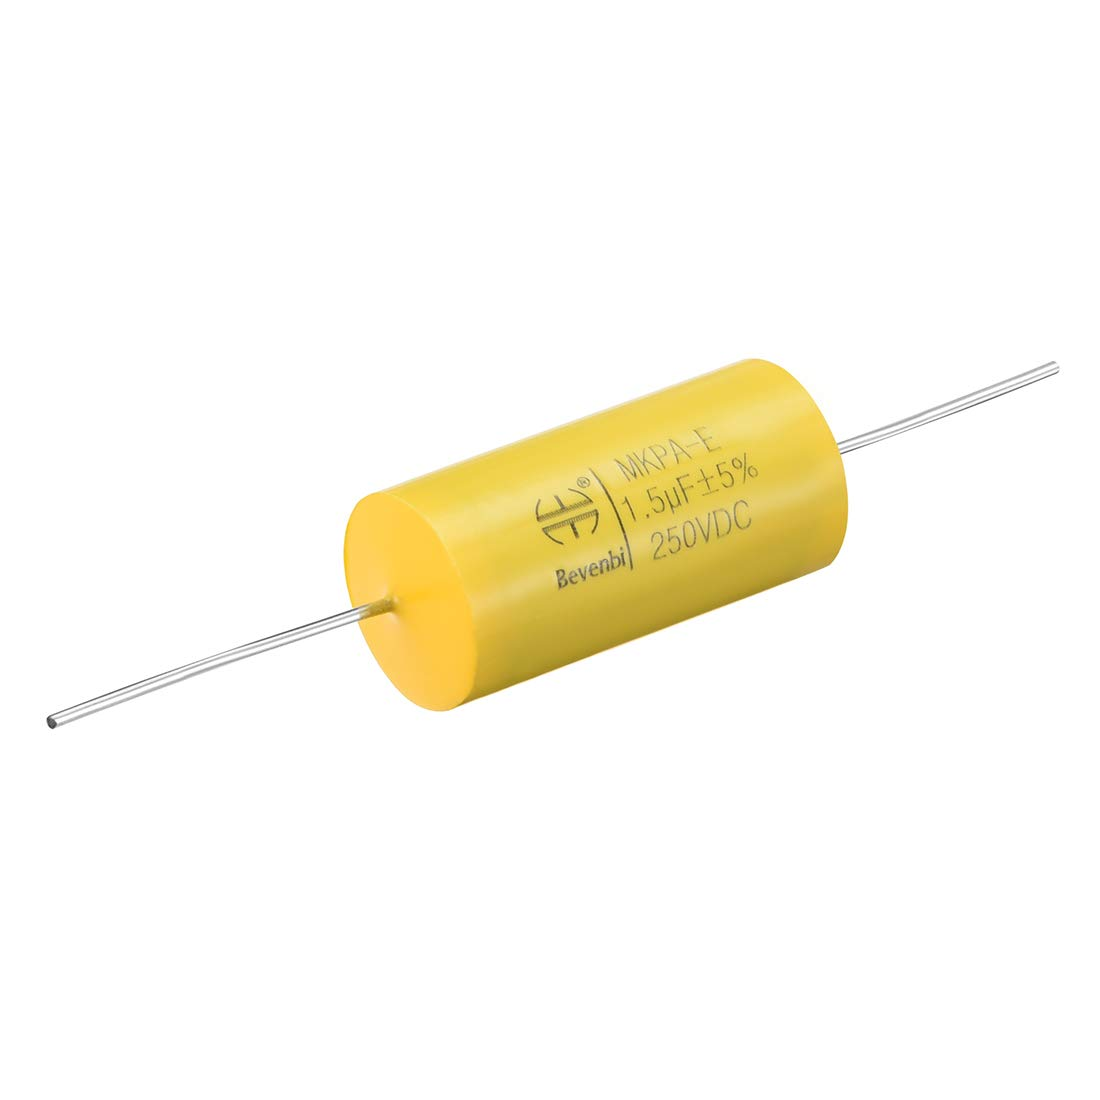 uxcell Film Capacitor 250V DC 20.0uF Round Axial Polypropylene Film Capacitor for Audio Divider Yellow